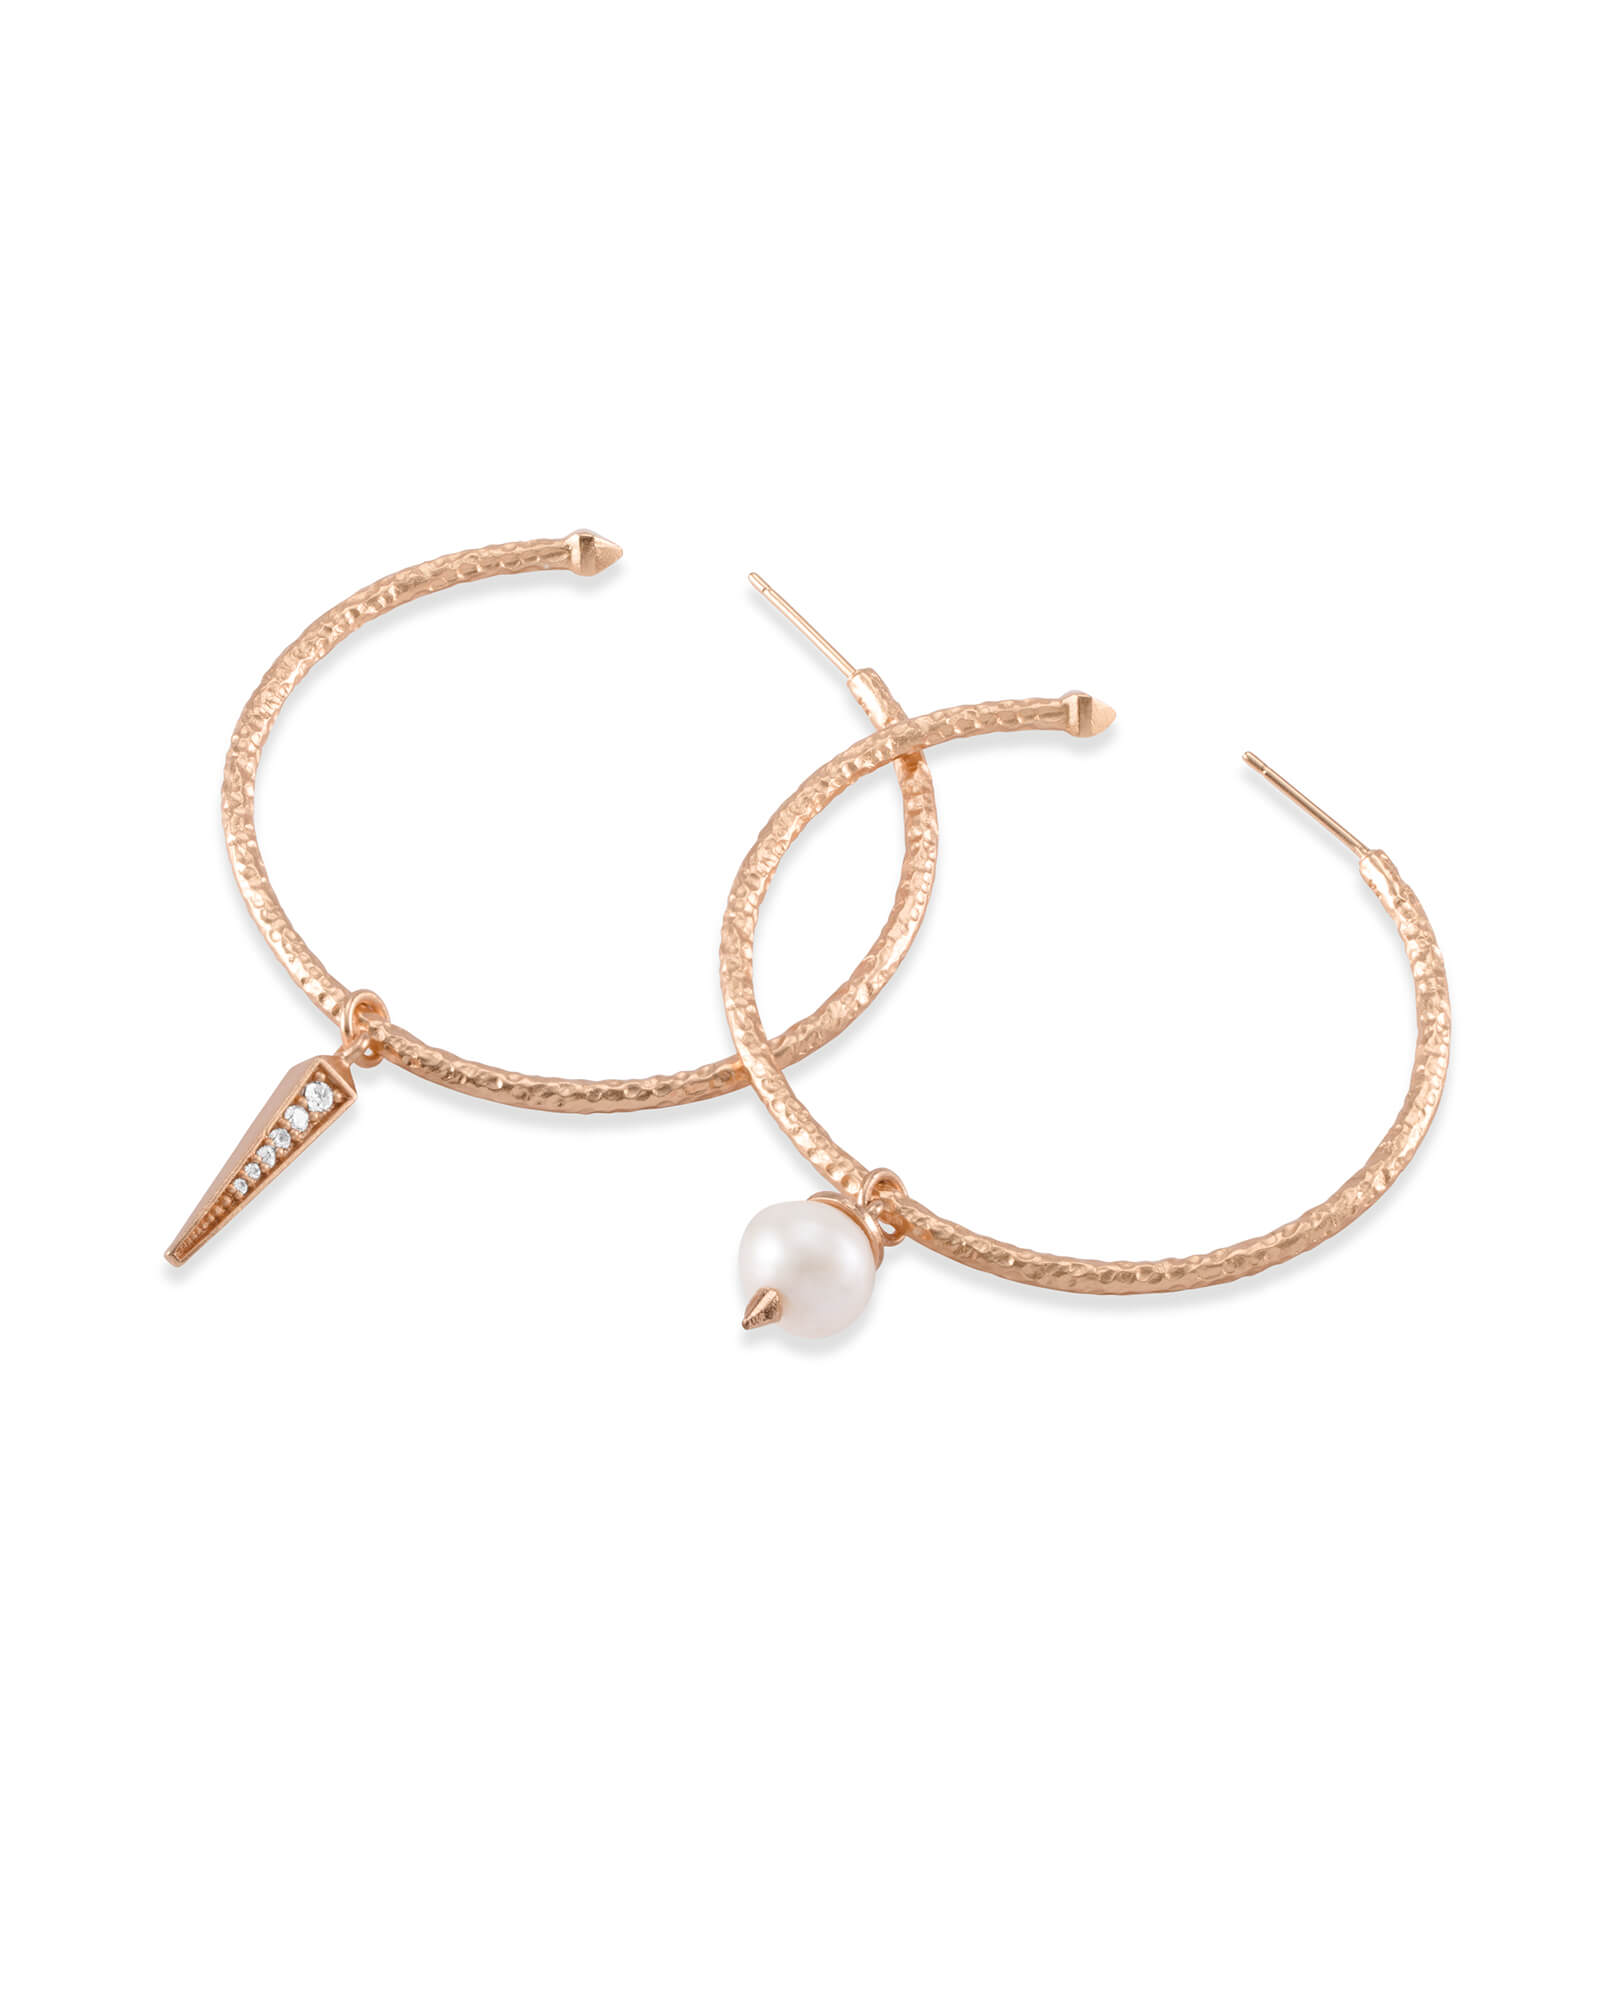 Duality Rose Gold Charm Earrings Set in White Pearl